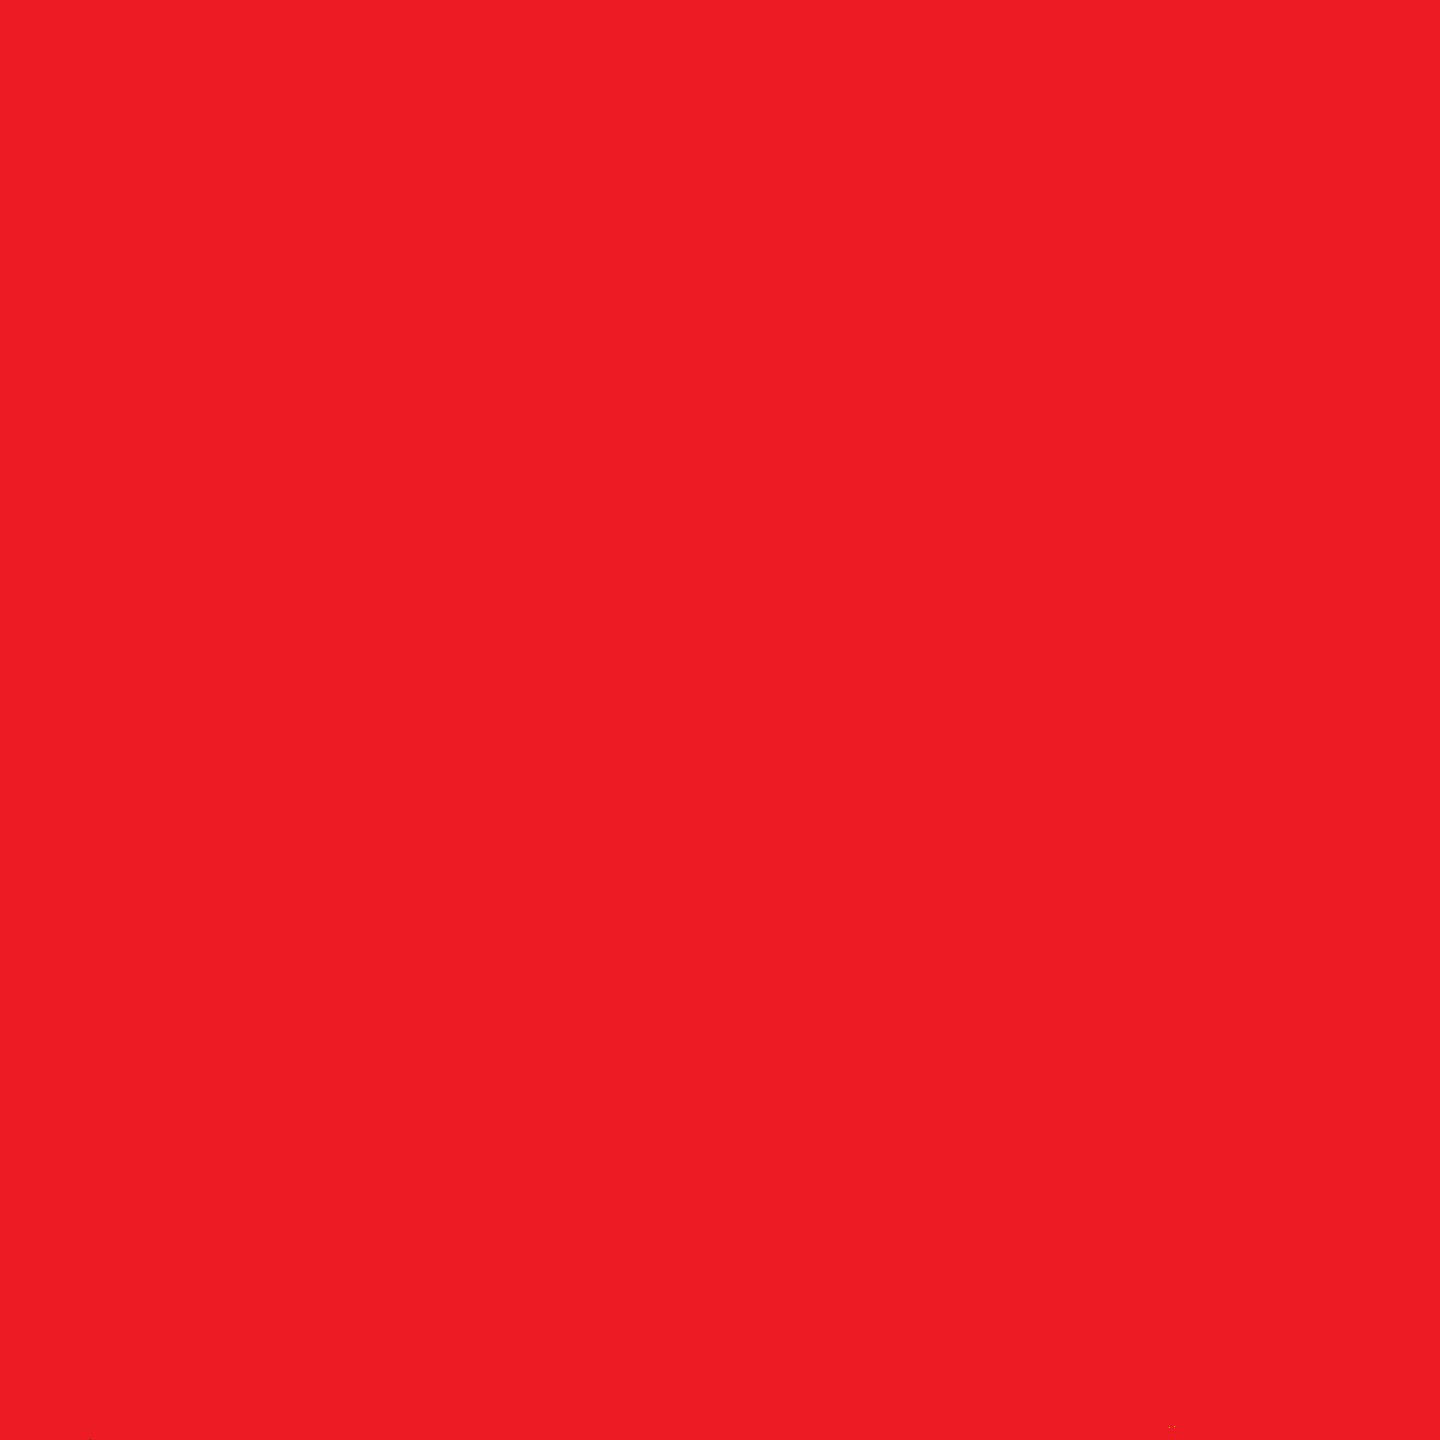 Solid red background w1iqbg